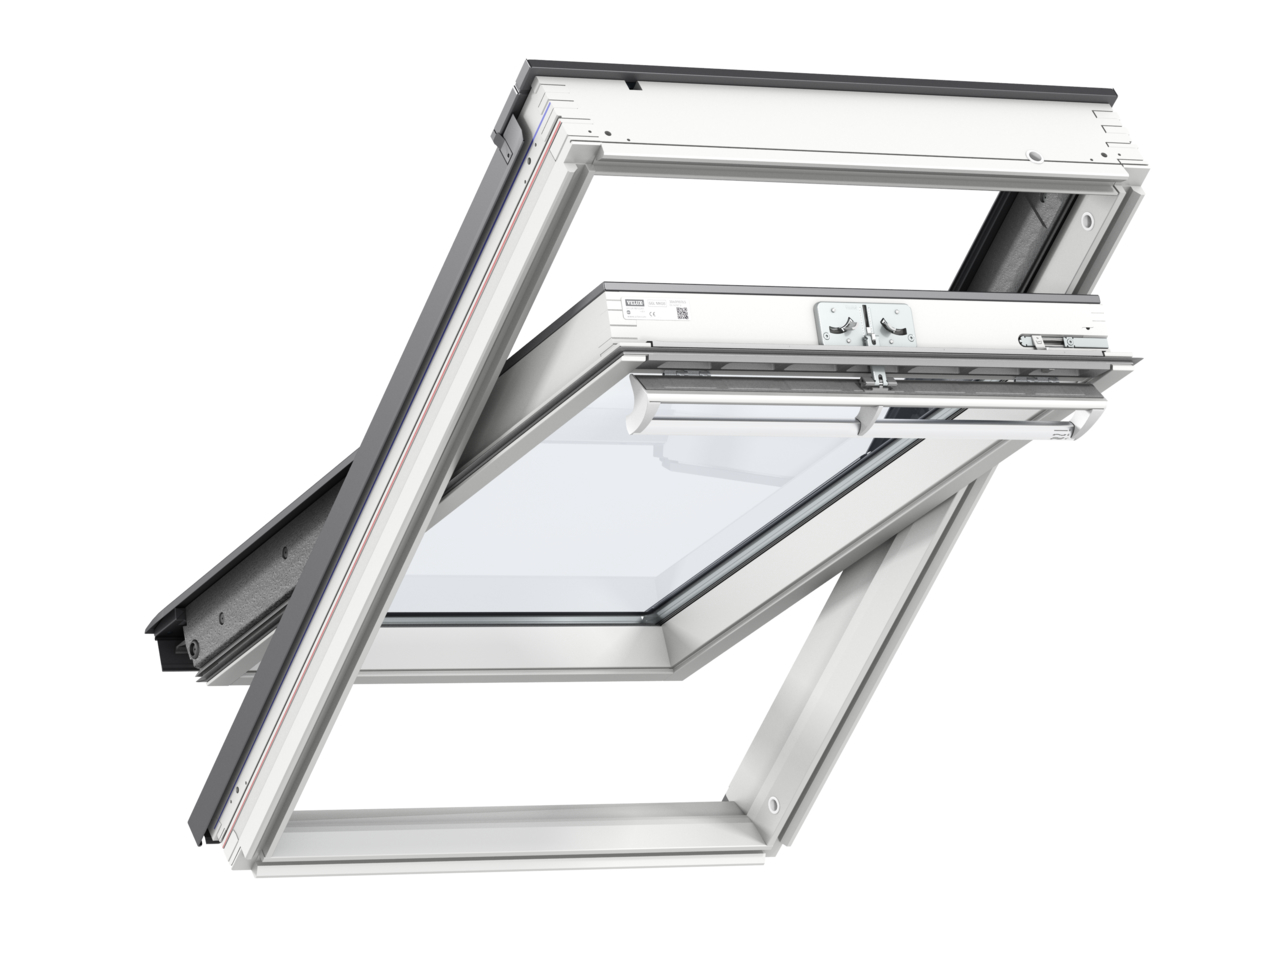 Velux GGL CK02 550 x 780mm Centre Pivot 70QPane Roof Window - White Painted